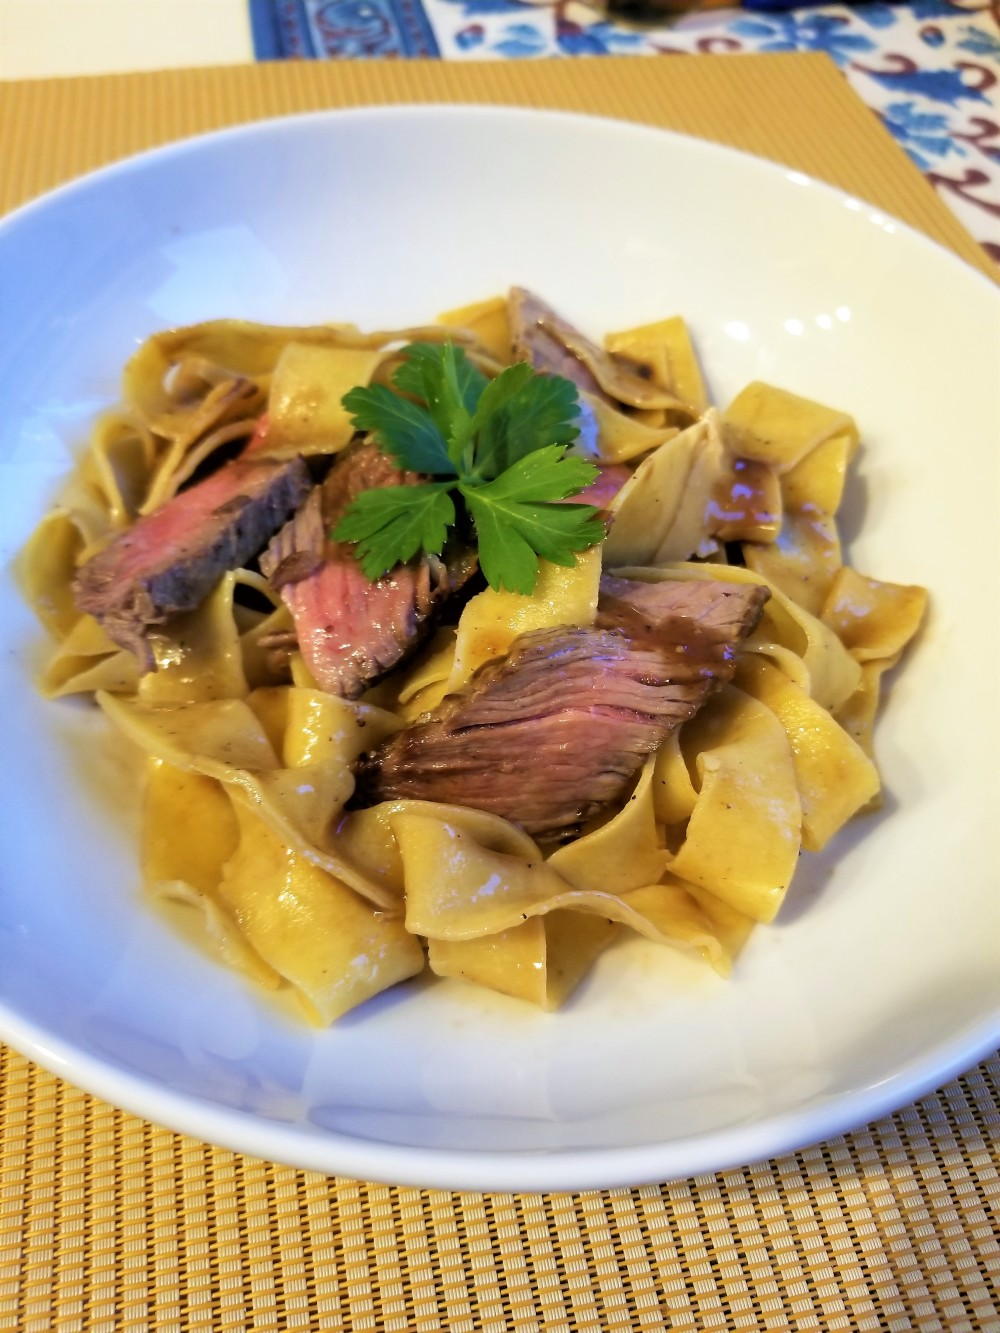 Pasta and sirloin steak in Red Wine Sauce